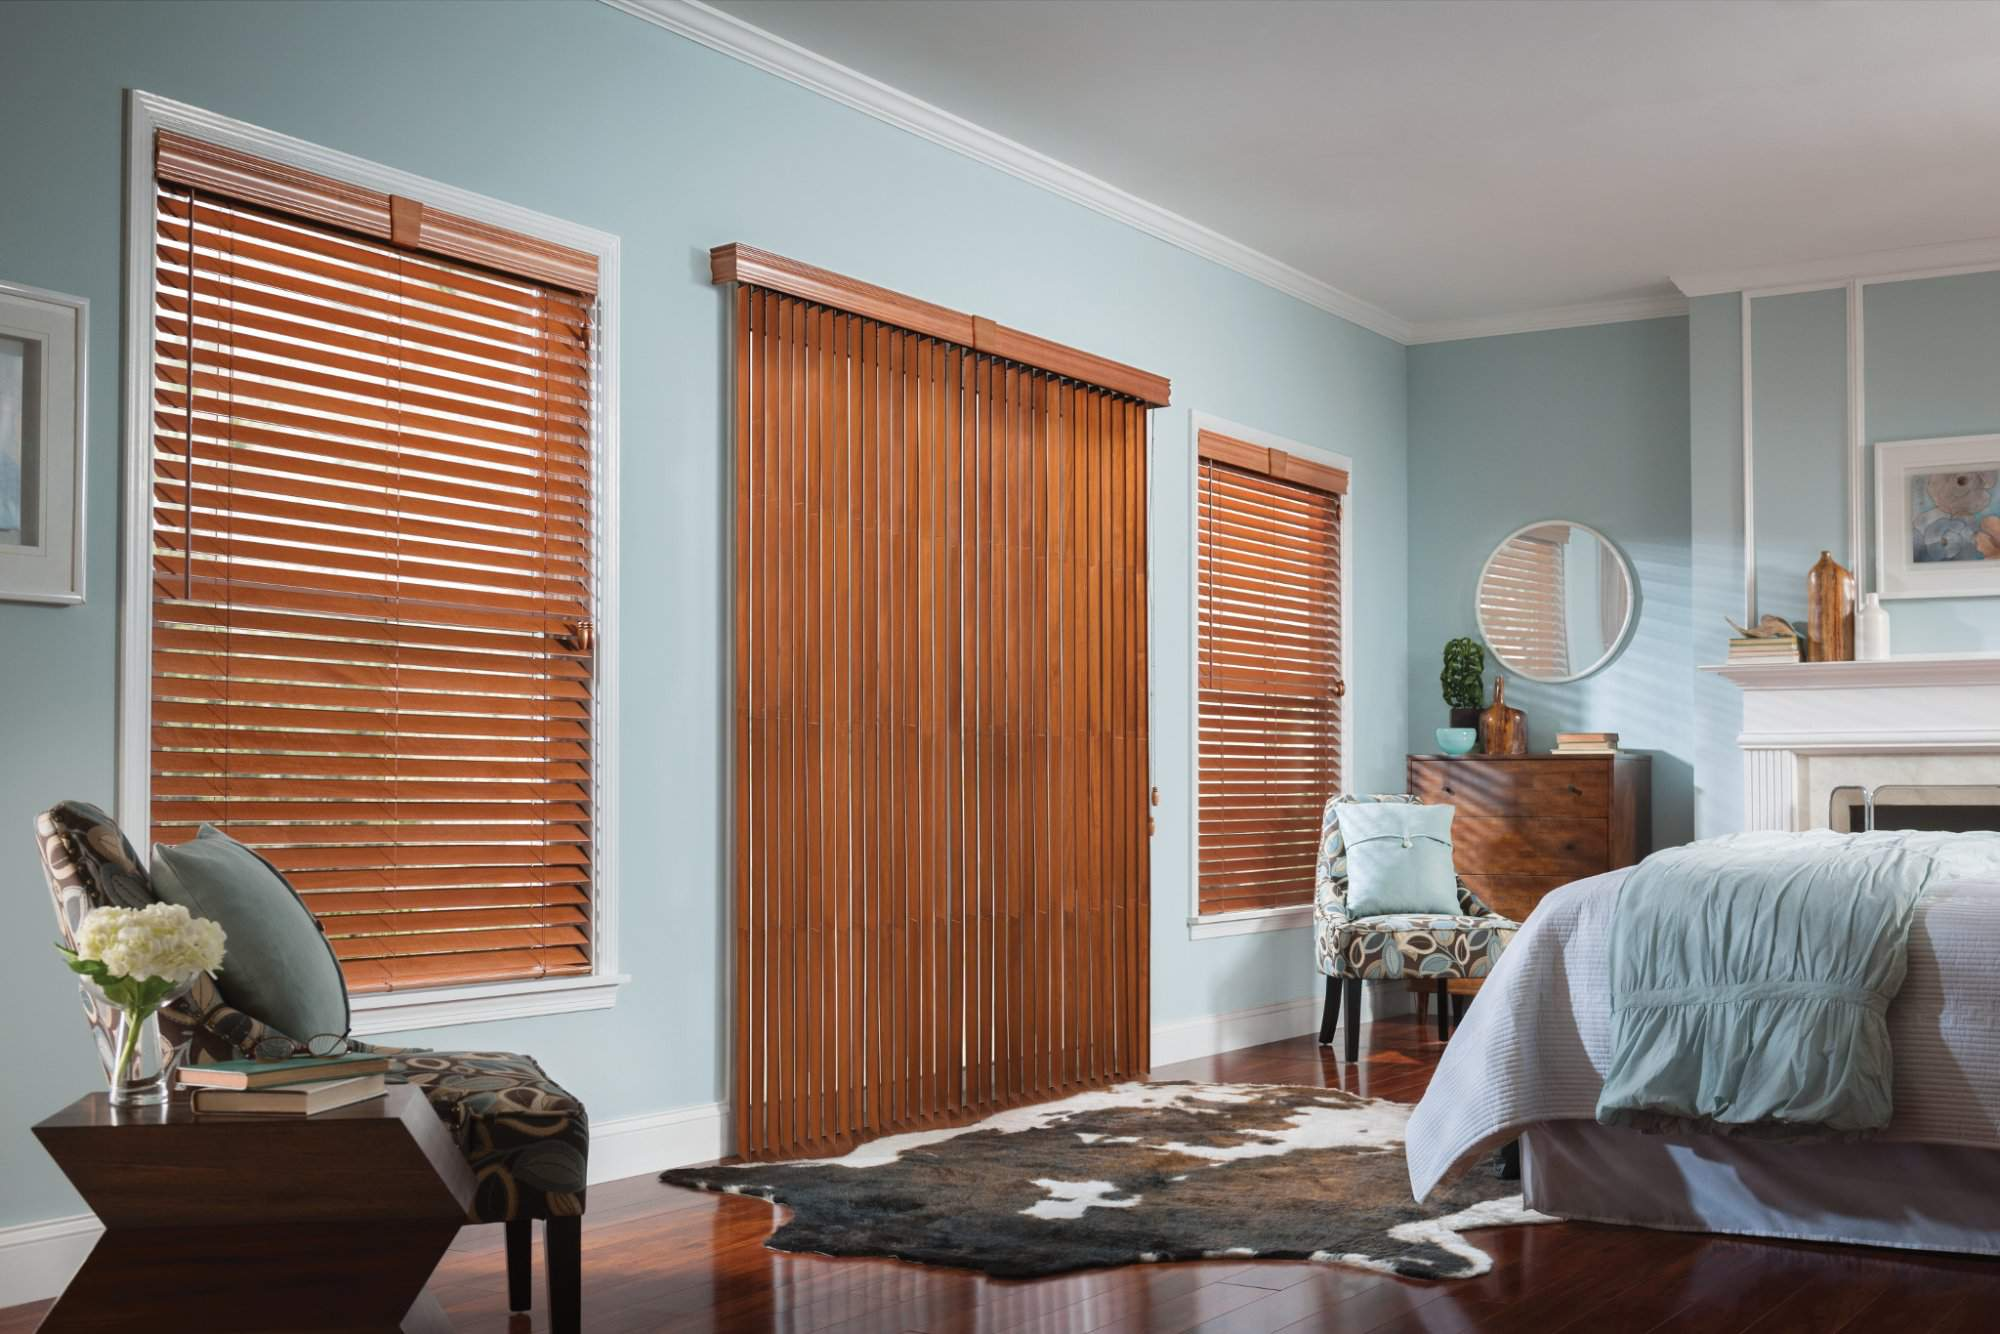 Wood Blinds with Cord LiftWand Tilt